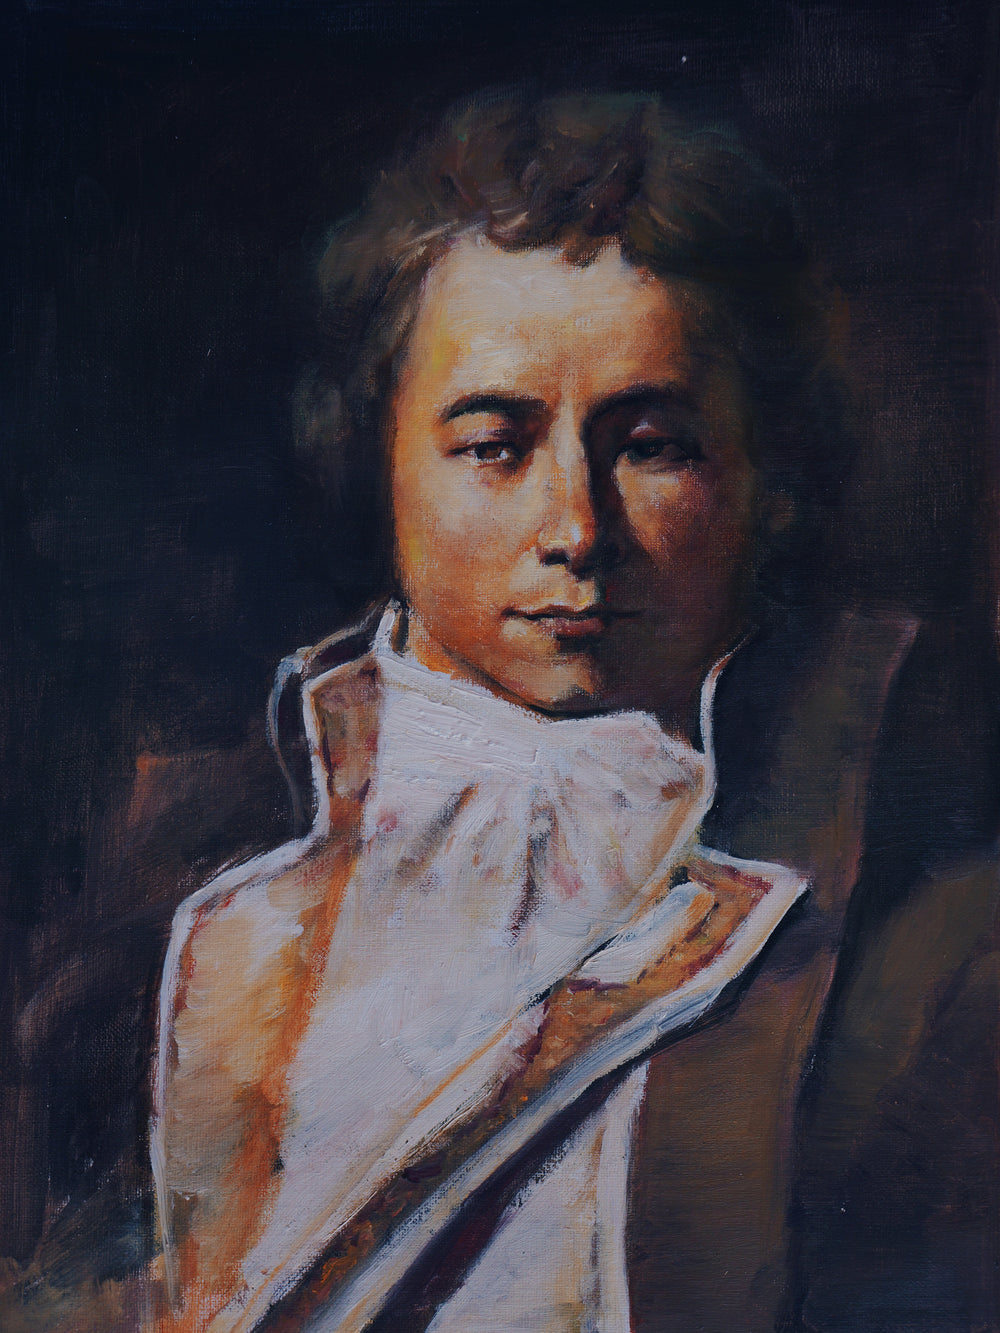 Carl Ditters von Dittersdorf <br> (1739-1799)